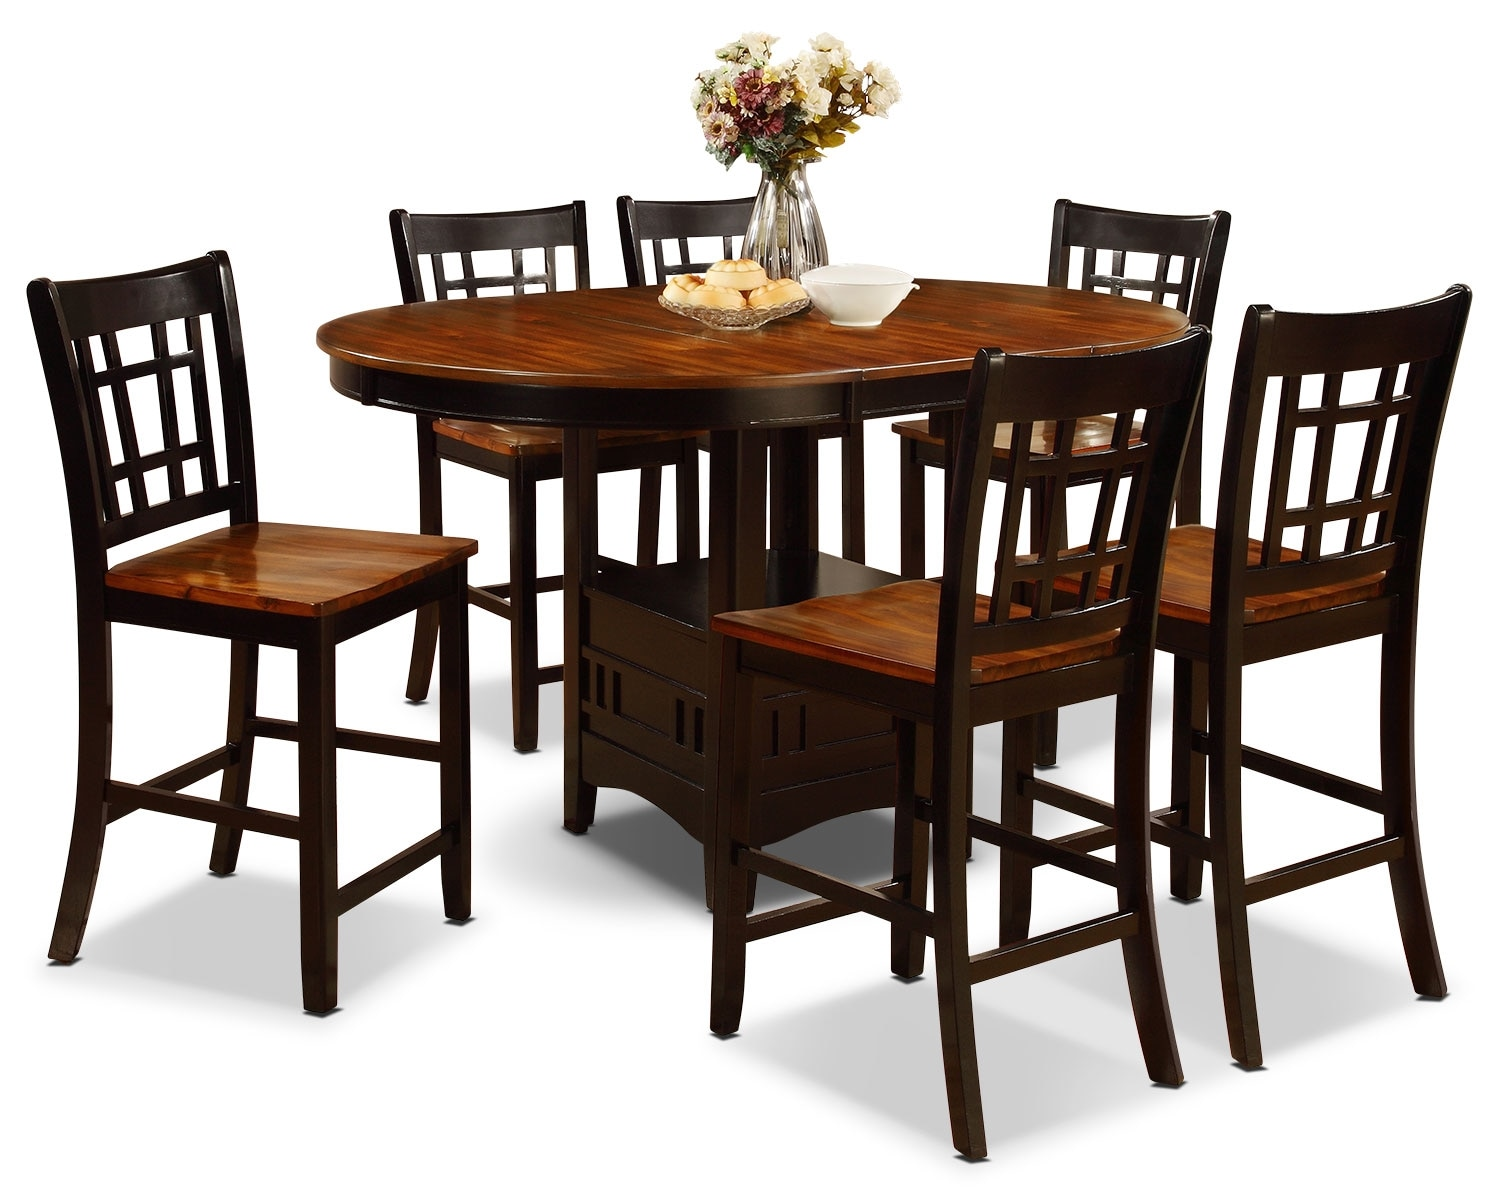 Dining Room Furniture - Dara 7-Piece Counter-Height Dining Package